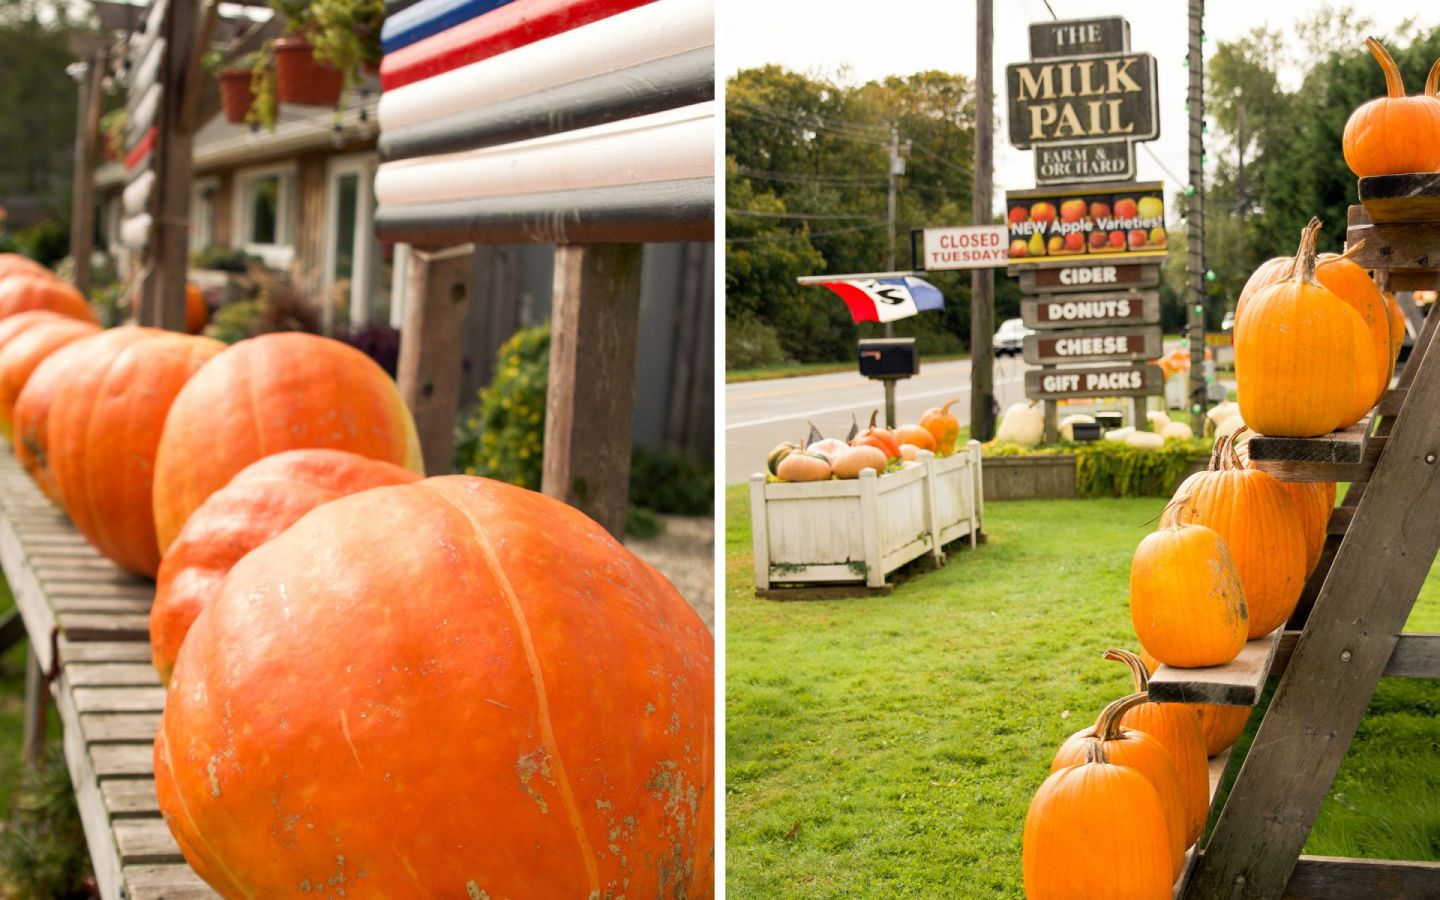 fall in the hamptons - the milk pail